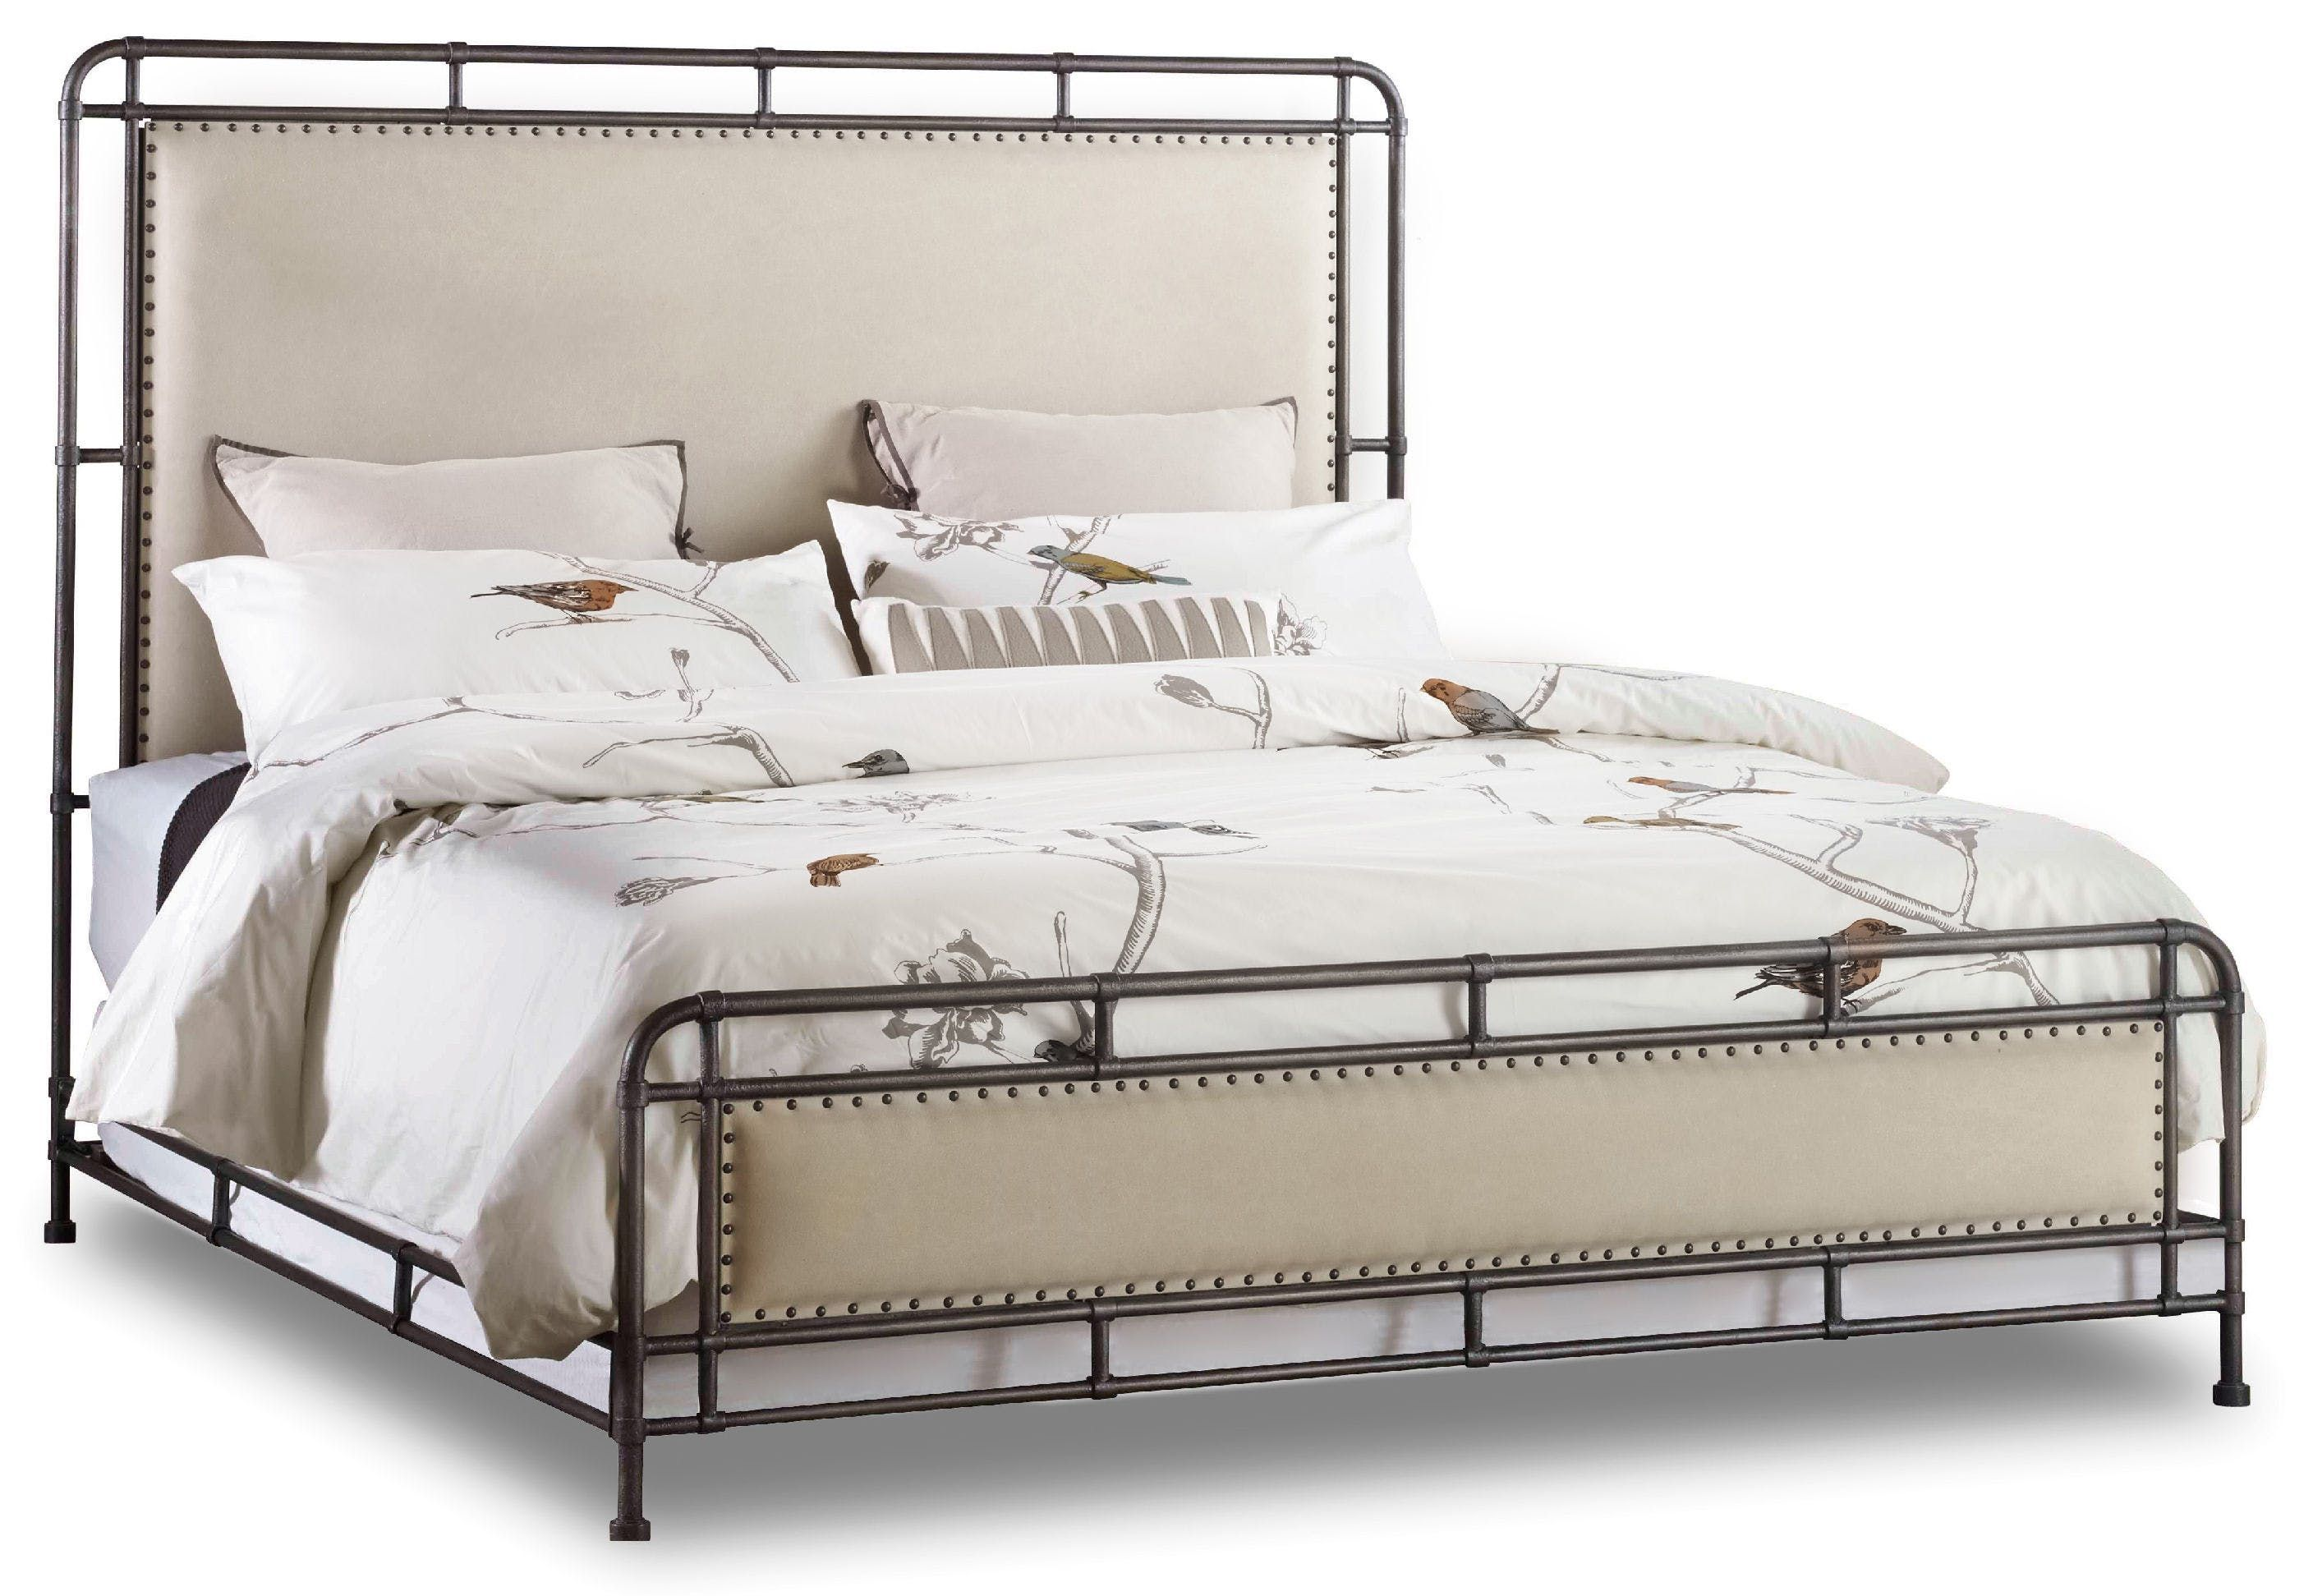 bedroom awesome size frames your frame footboard of full bed metal upholstered and mattress for iron steel without deals headboard king